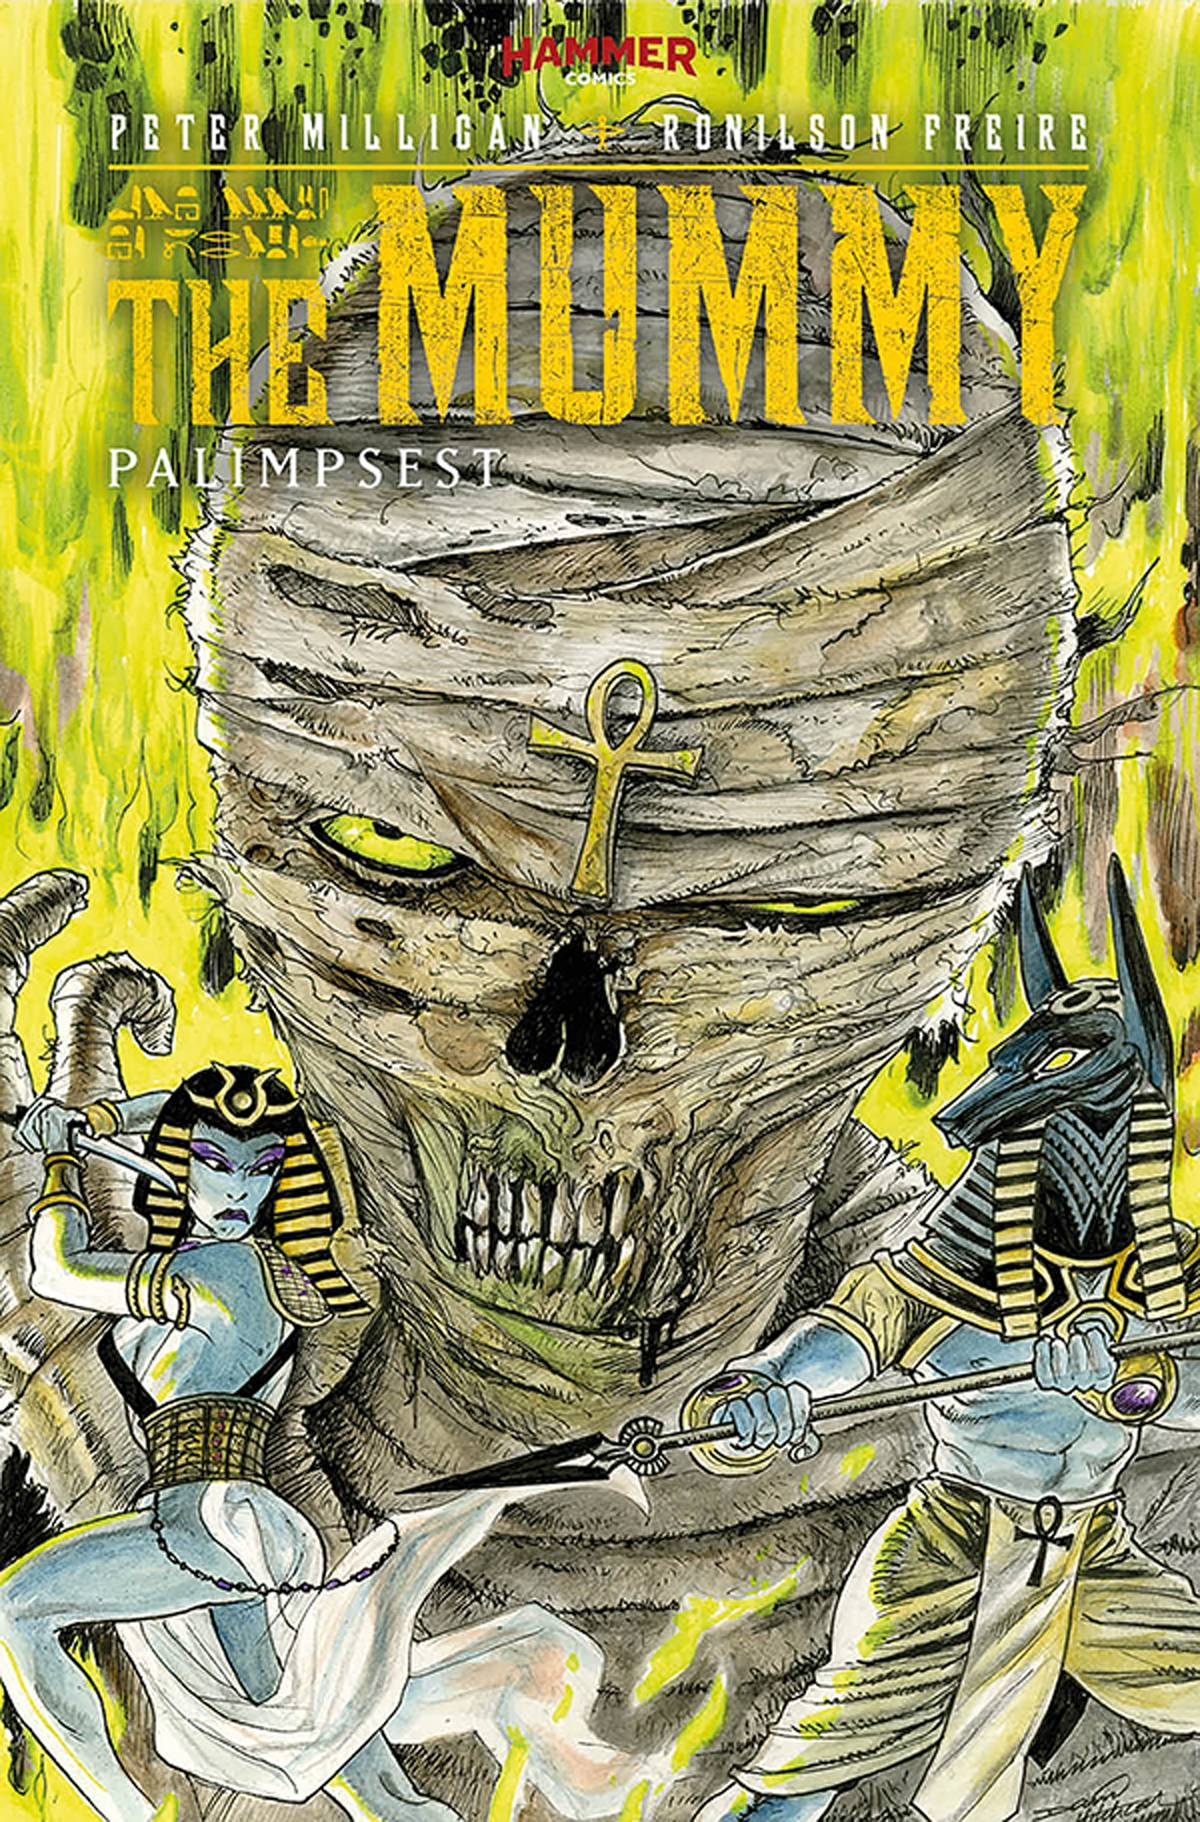 THE MUMMY (HAMMER) #3